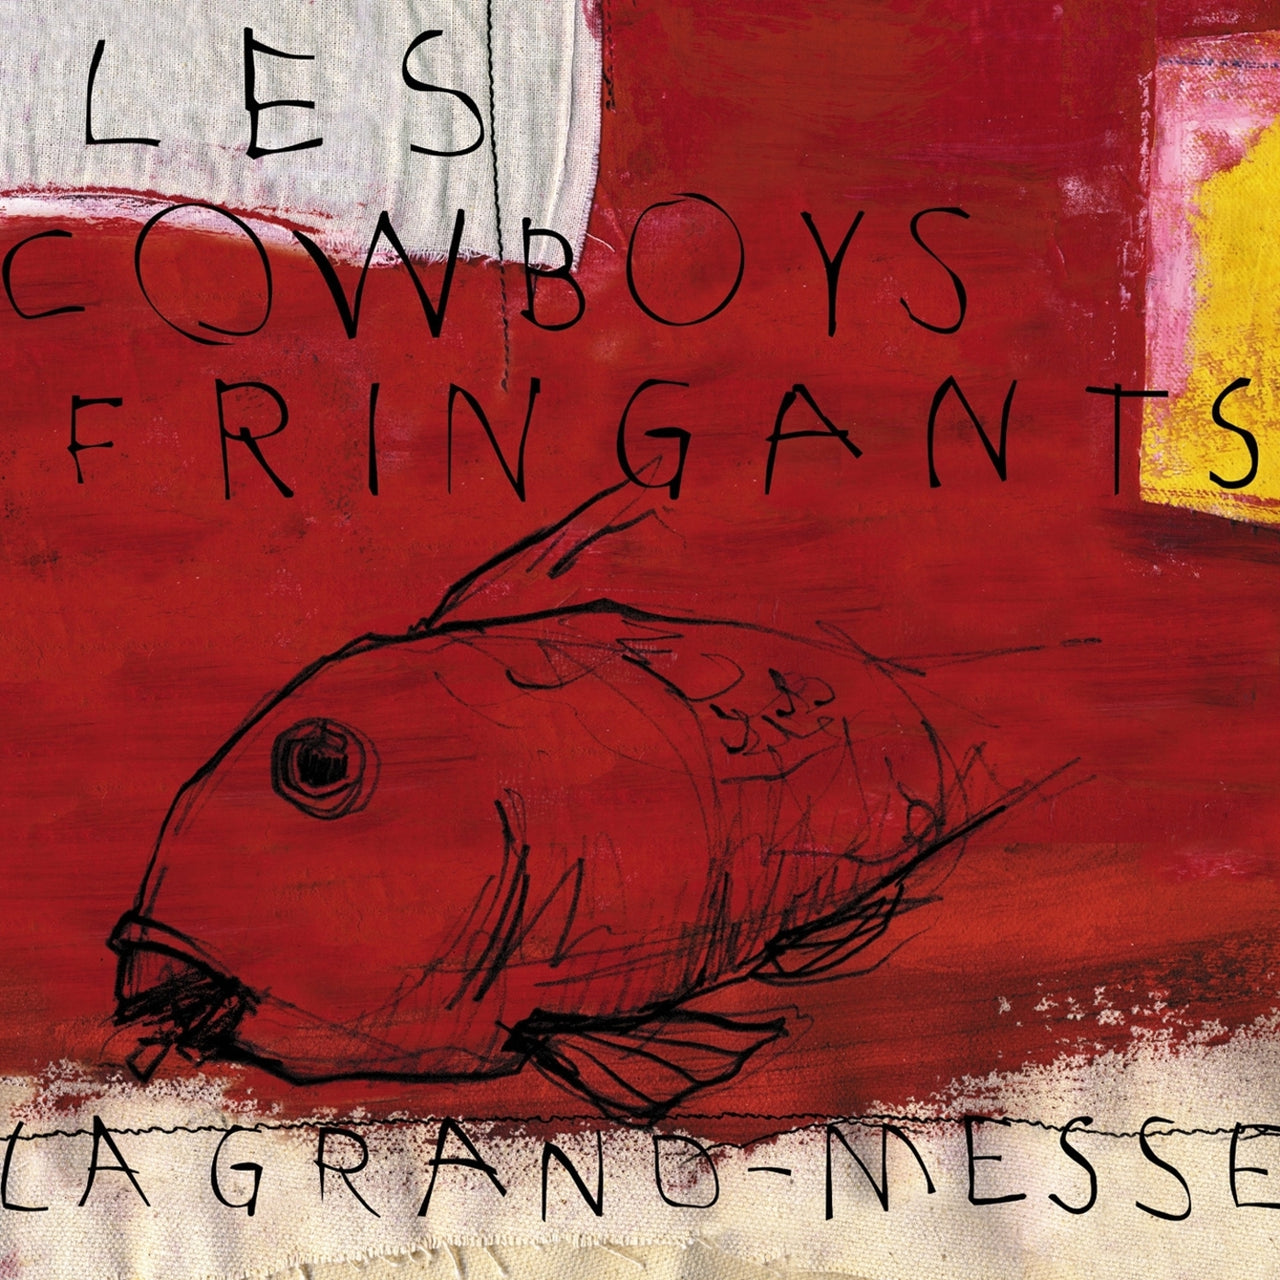 Cowboys Fringants (Les) : La grand-messe  CD